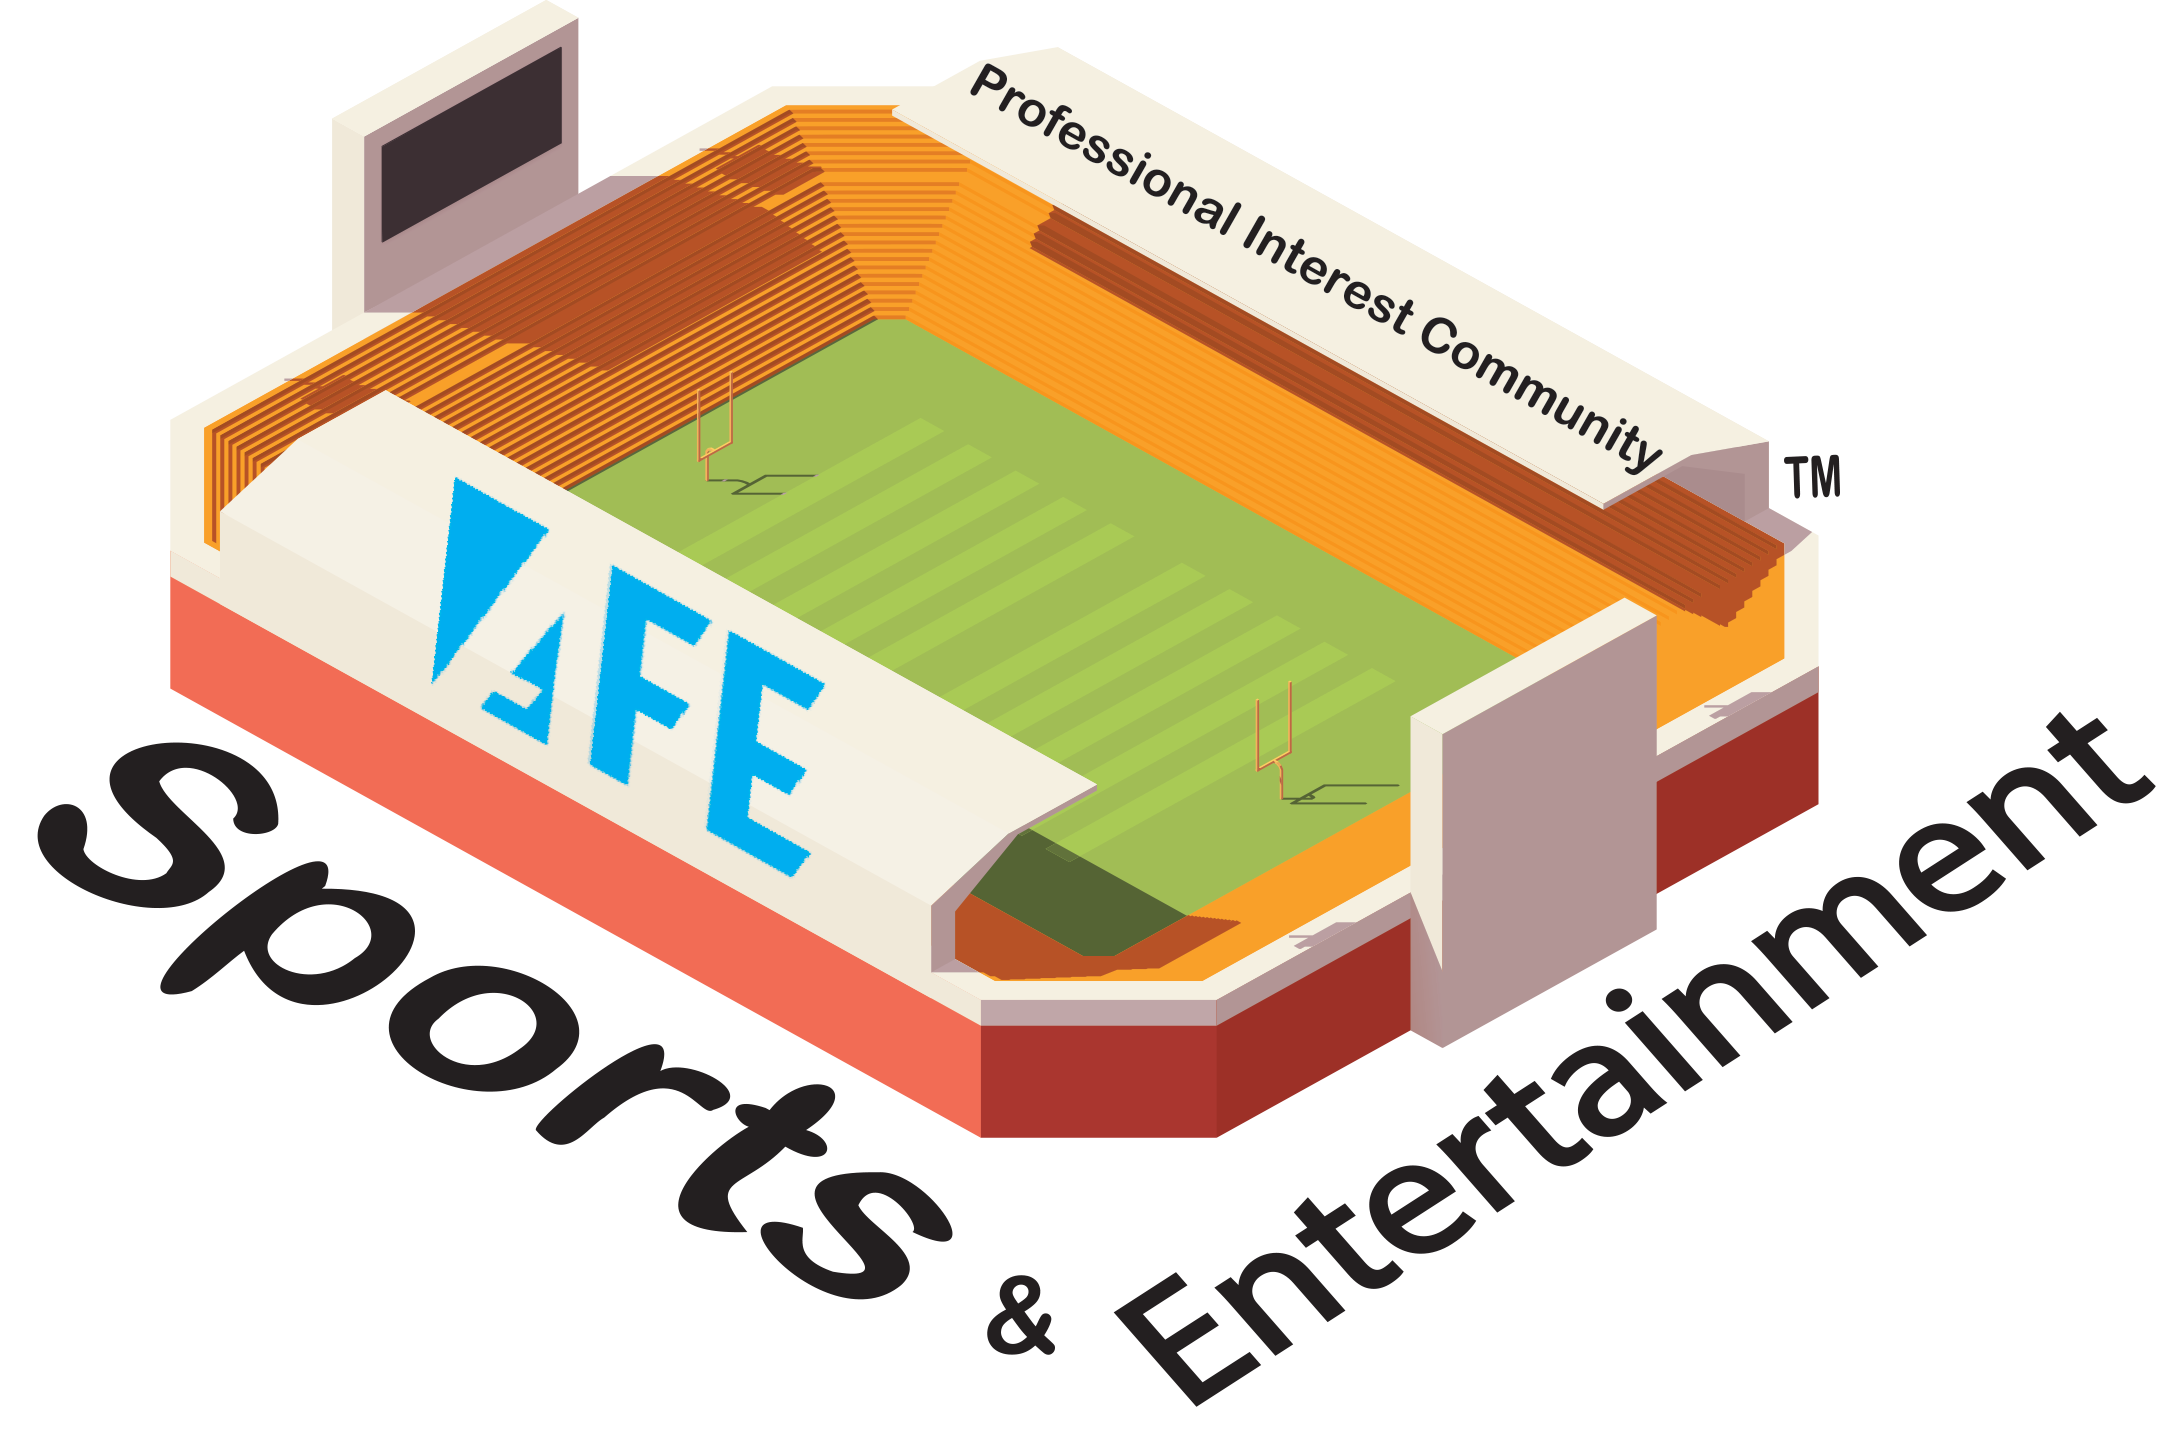 AFE Sports & Entertainment PIC Logo